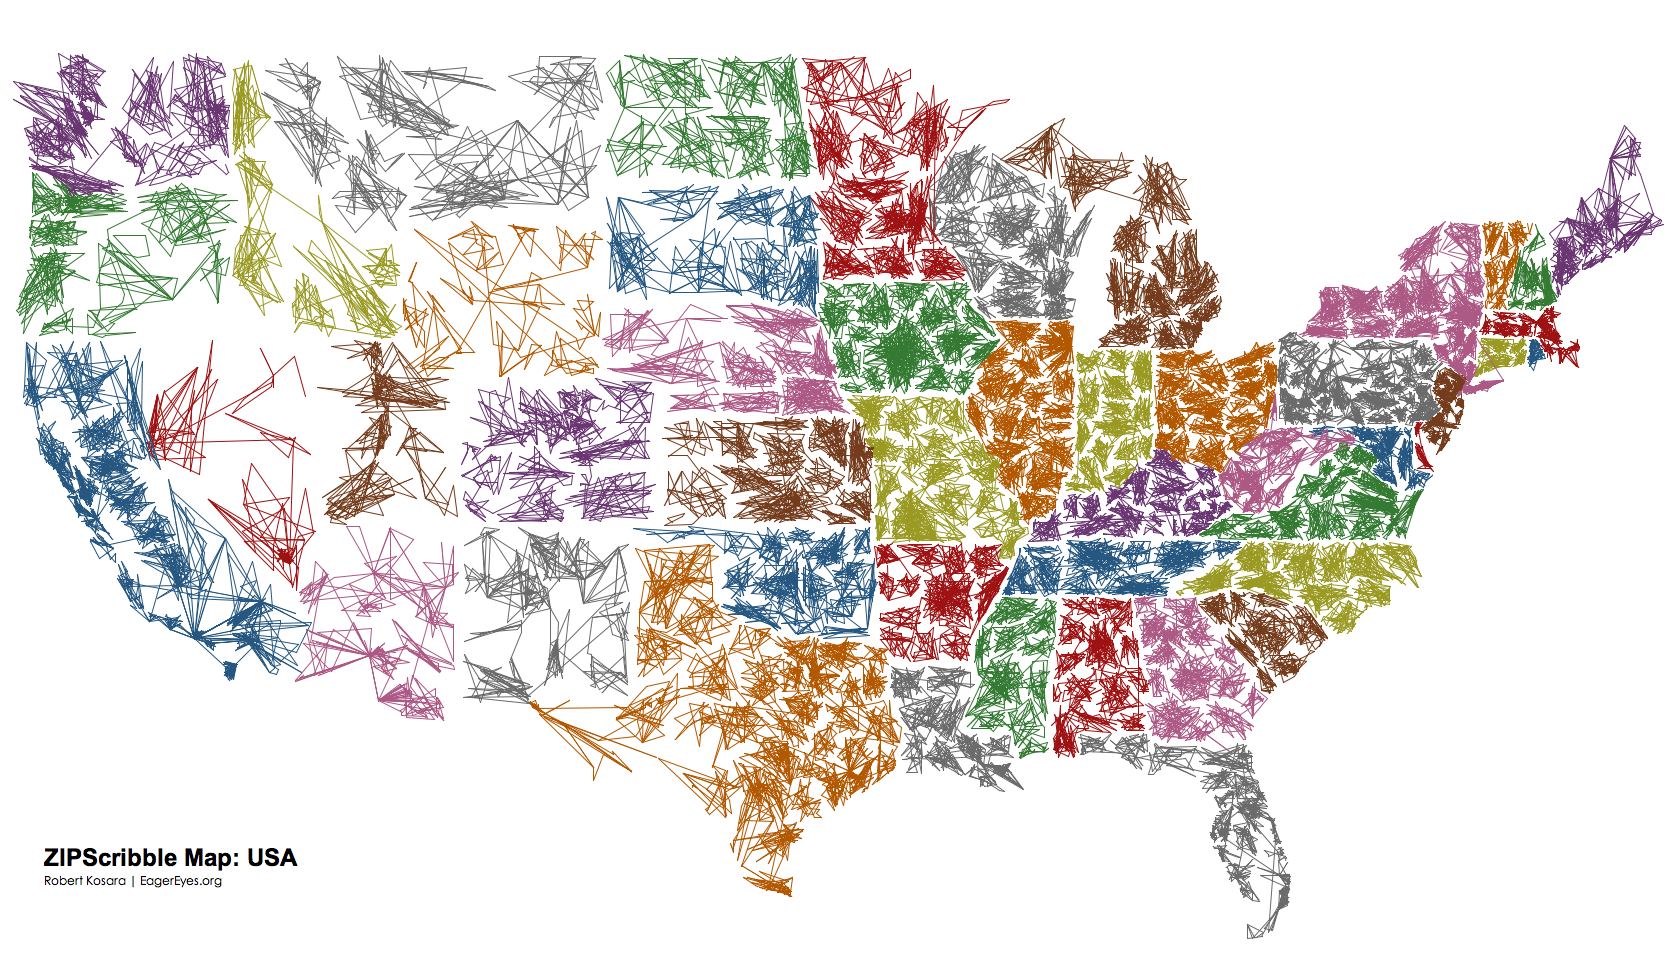 The US ZIPScribble Map - Us postal zone map